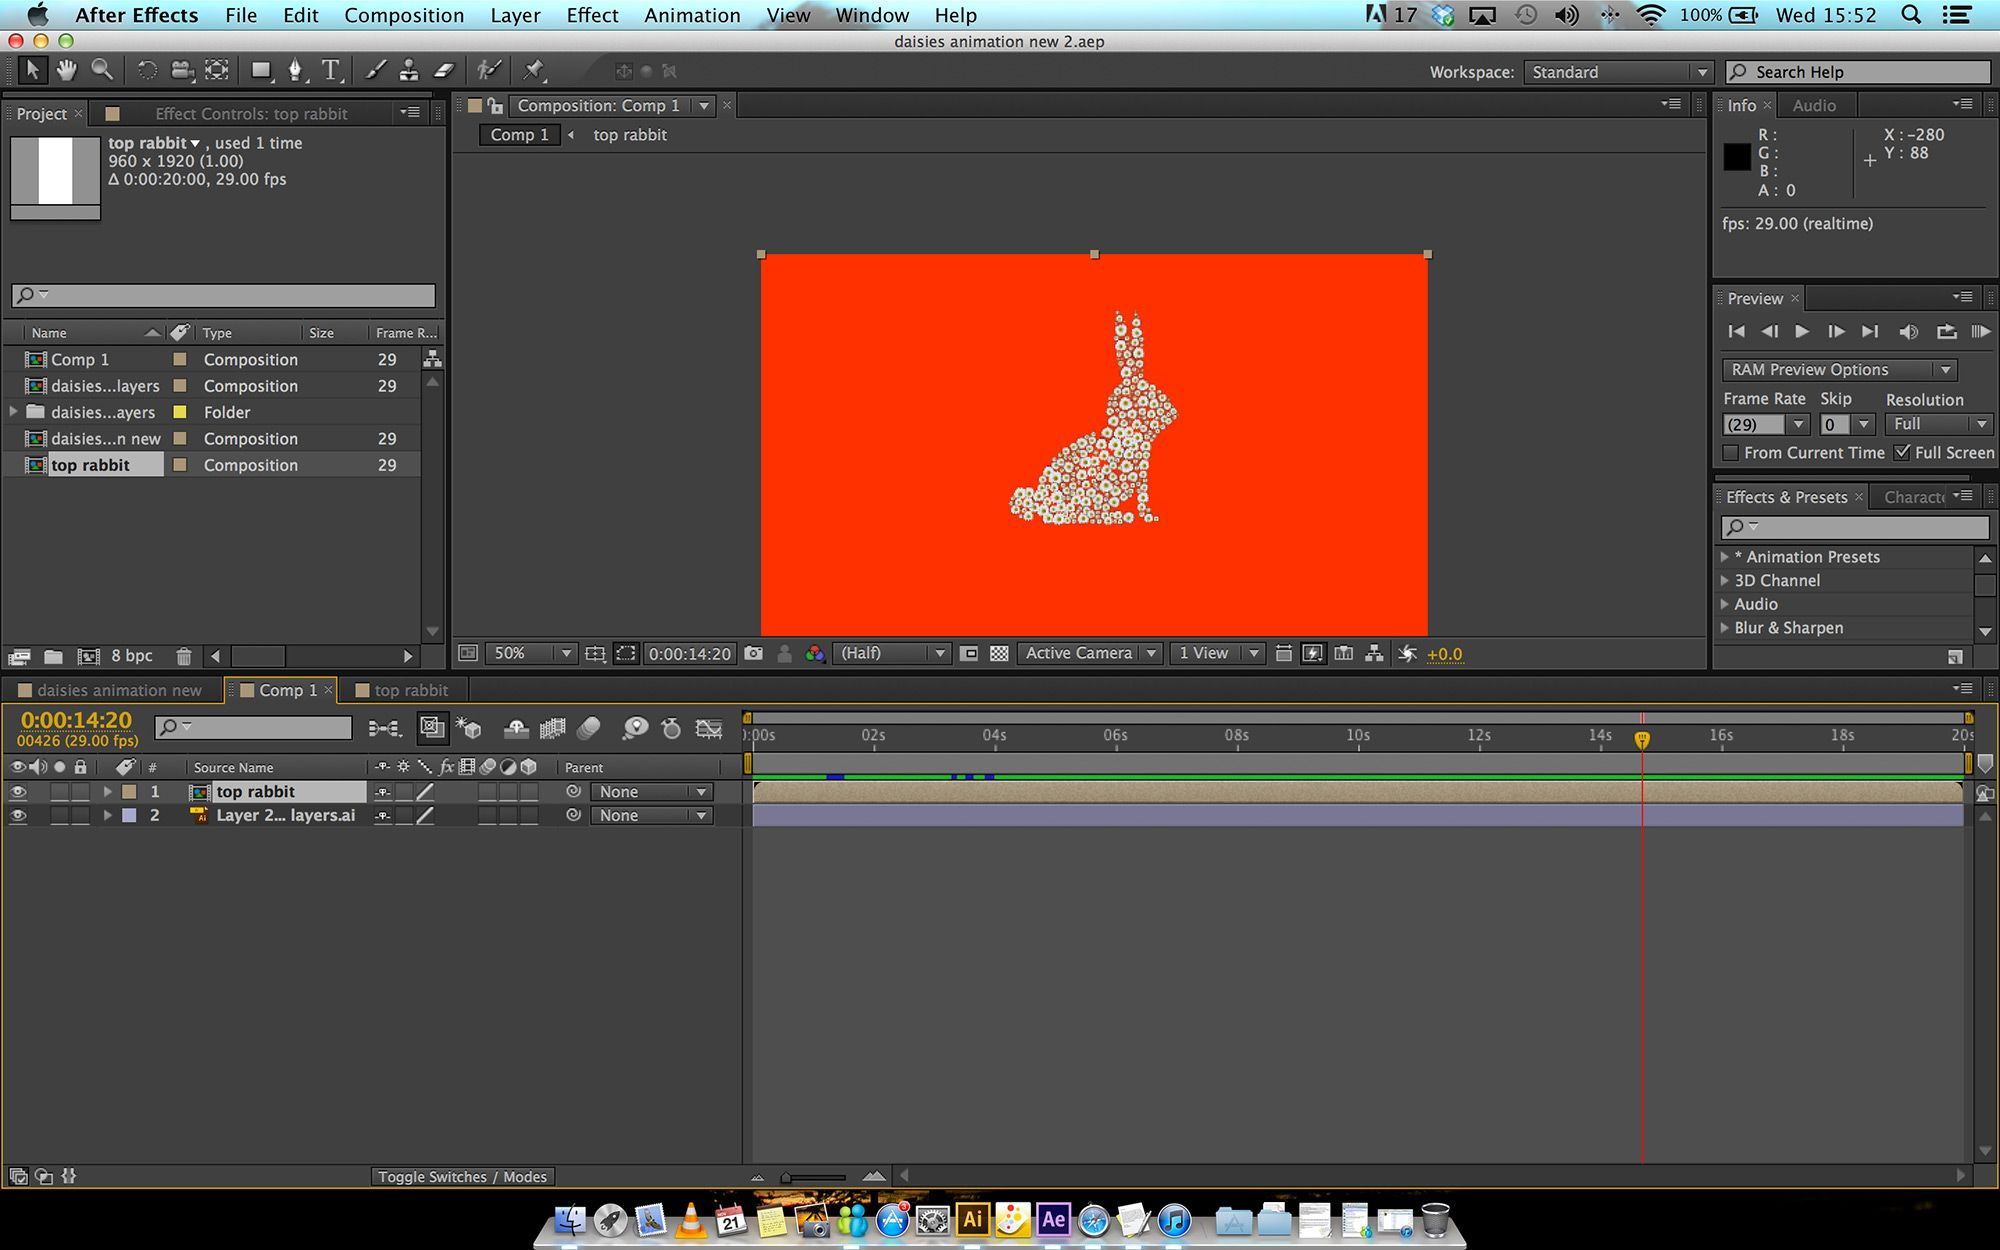 Testing the growth of the rabbit from daises before implementing it into the final movie.